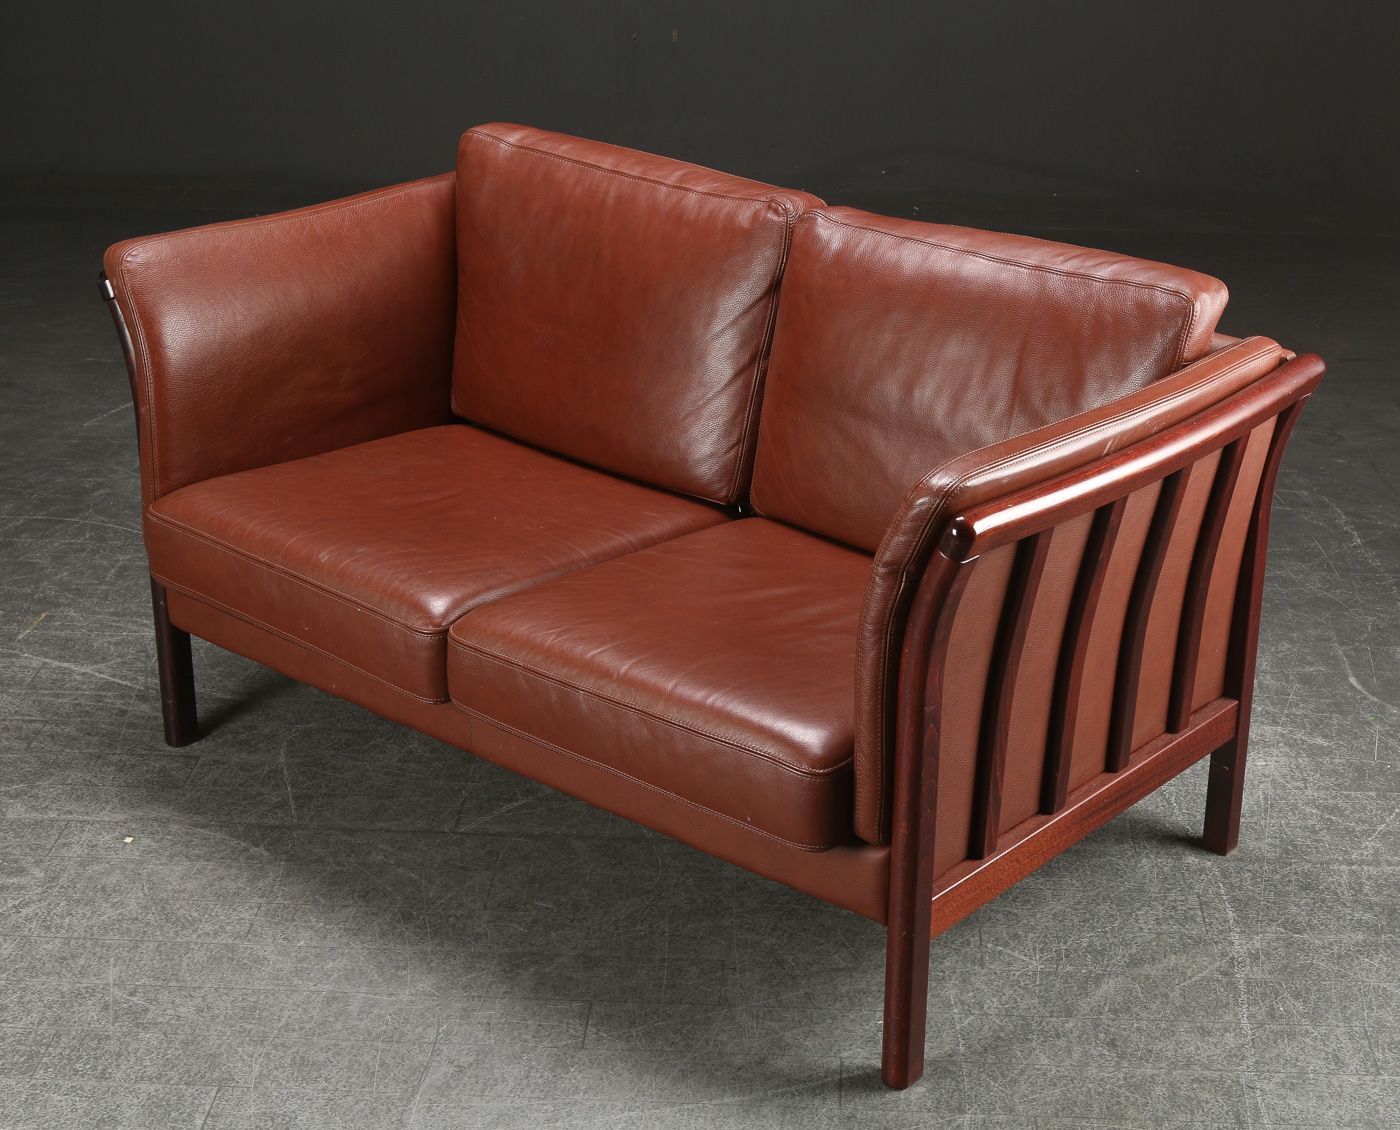 Vintage danish seater leather sofa with wooden frame for